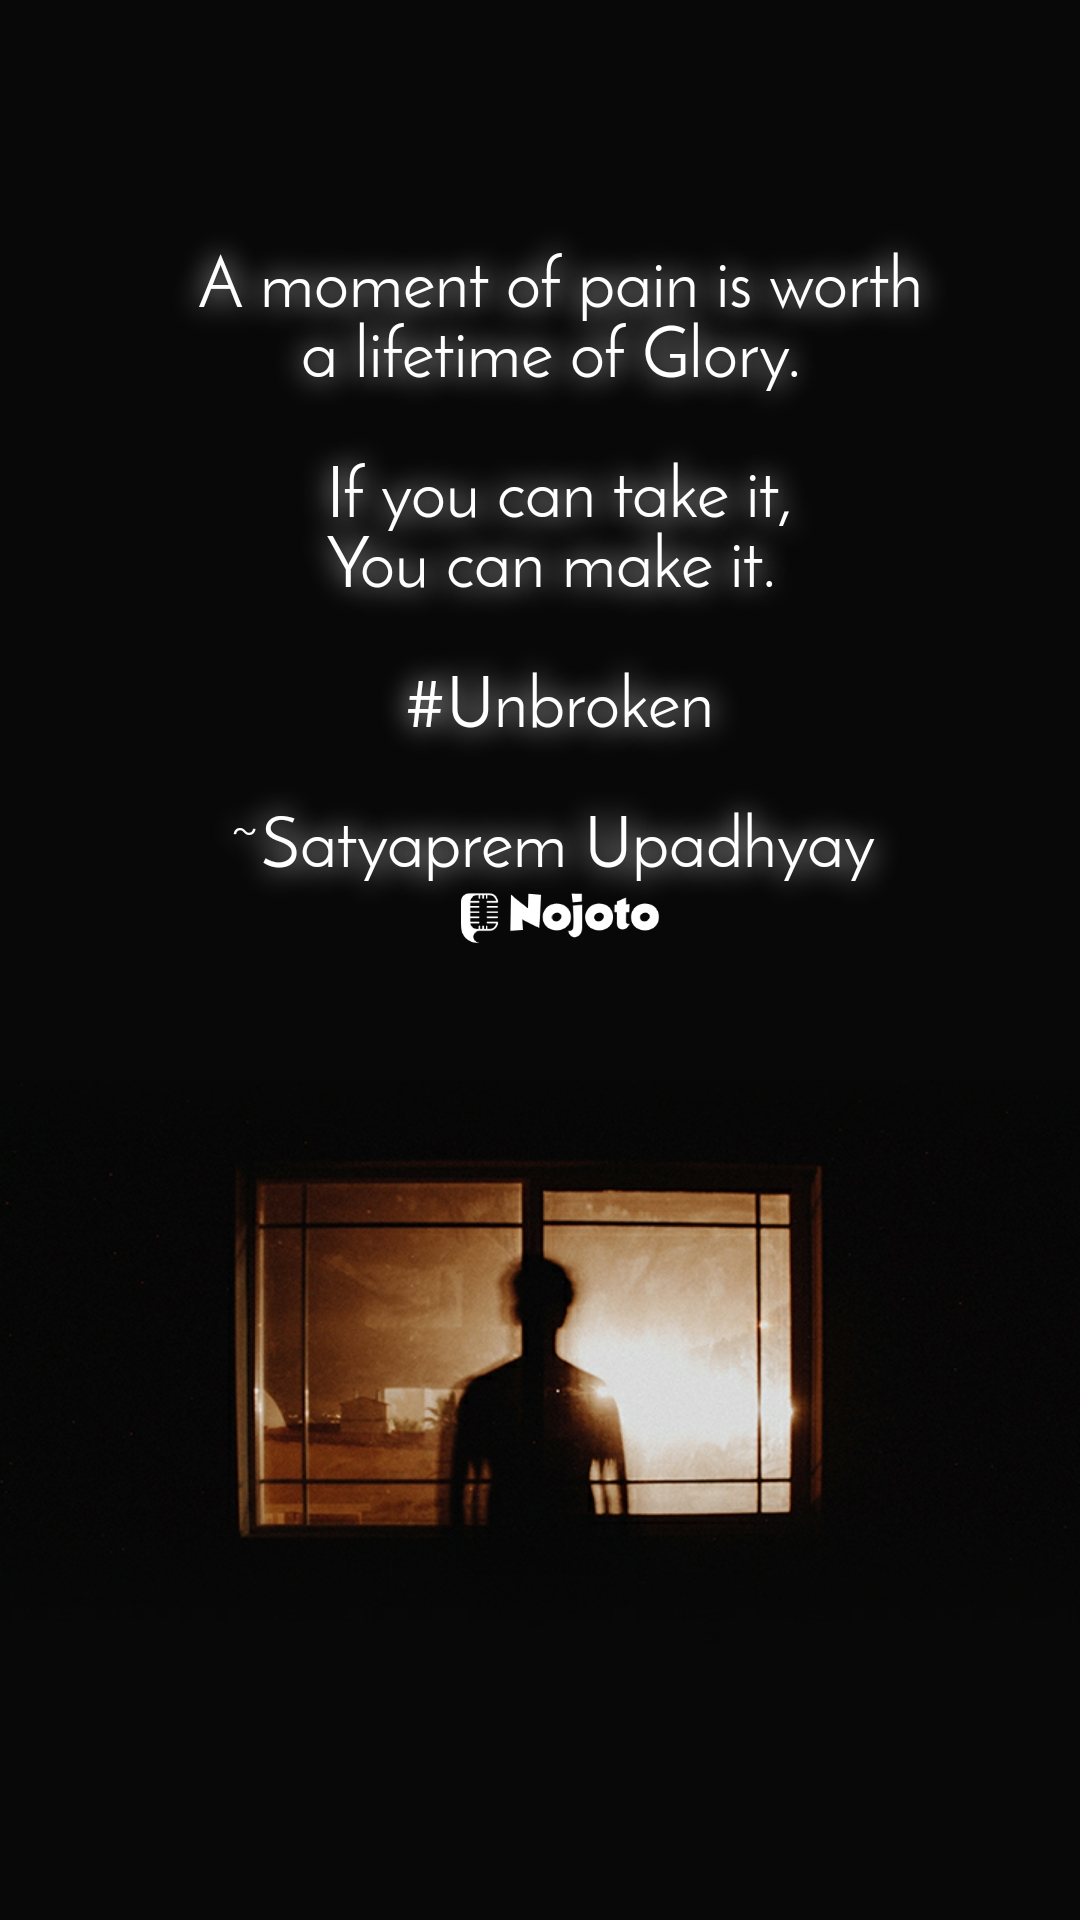 A moment of pain is worth a lifetime of Glory.   If you can take it, You can make it.   #Unbroken  ~Satyaprem Upadhyay